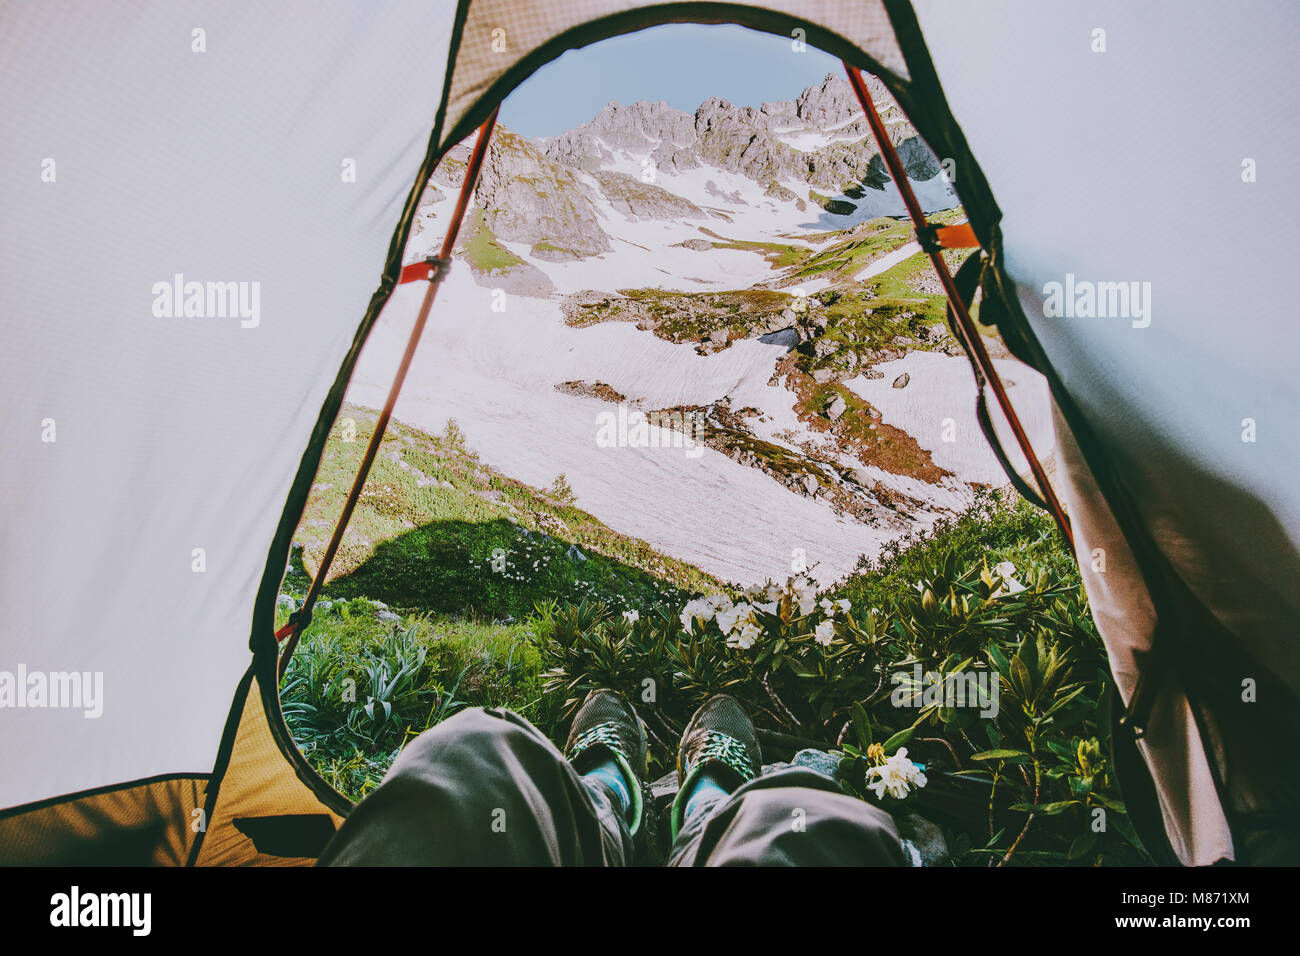 Feet Man relaxing with mountains view from tent camping entrance outdoor Travel wanderlust Lifestyle concept adventure - Stock Image